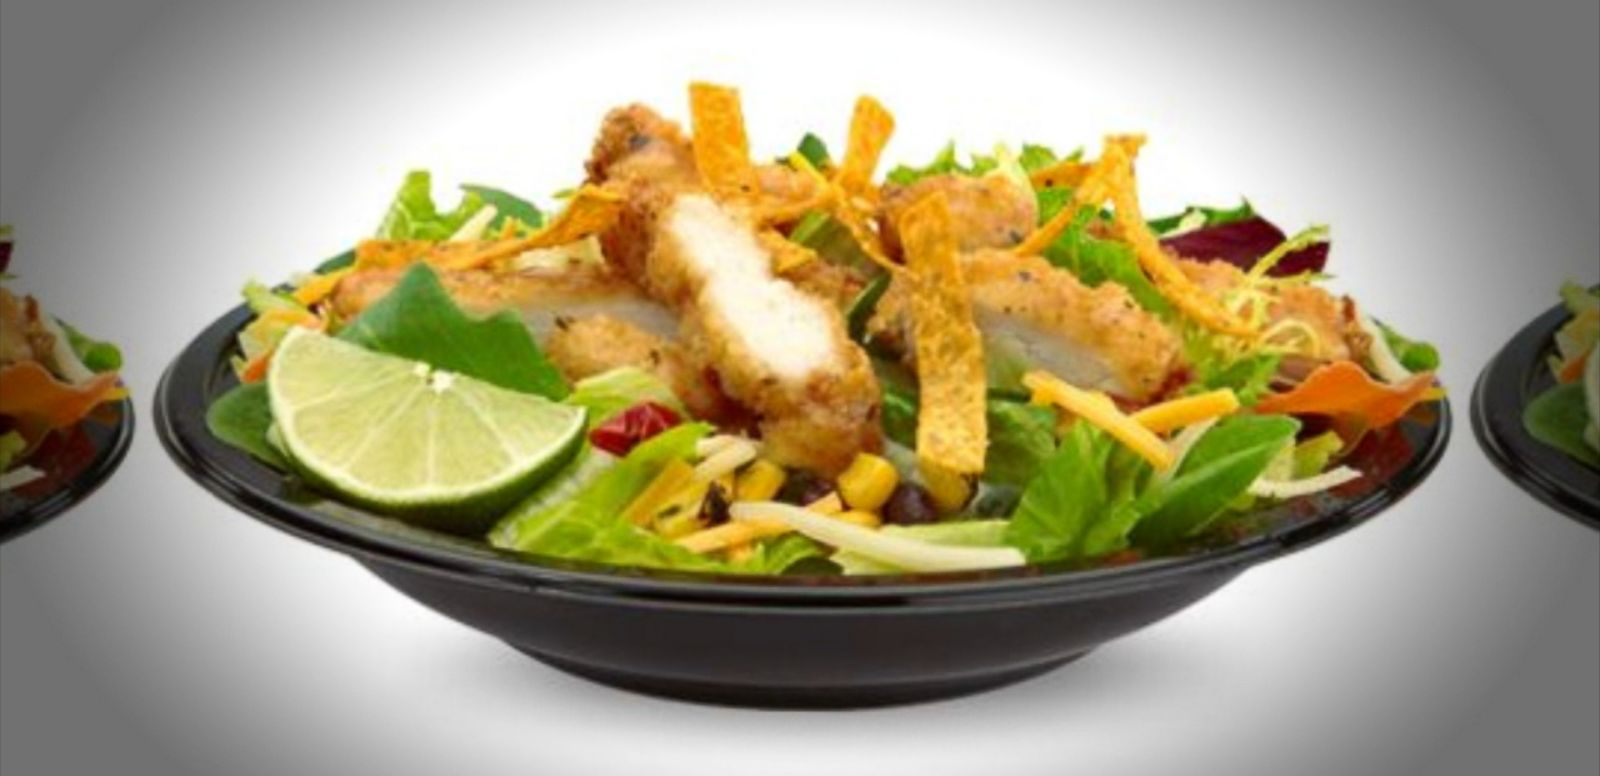 VIDEO: The fast-food chain's newest salad offering has more calories than its Big Mac.